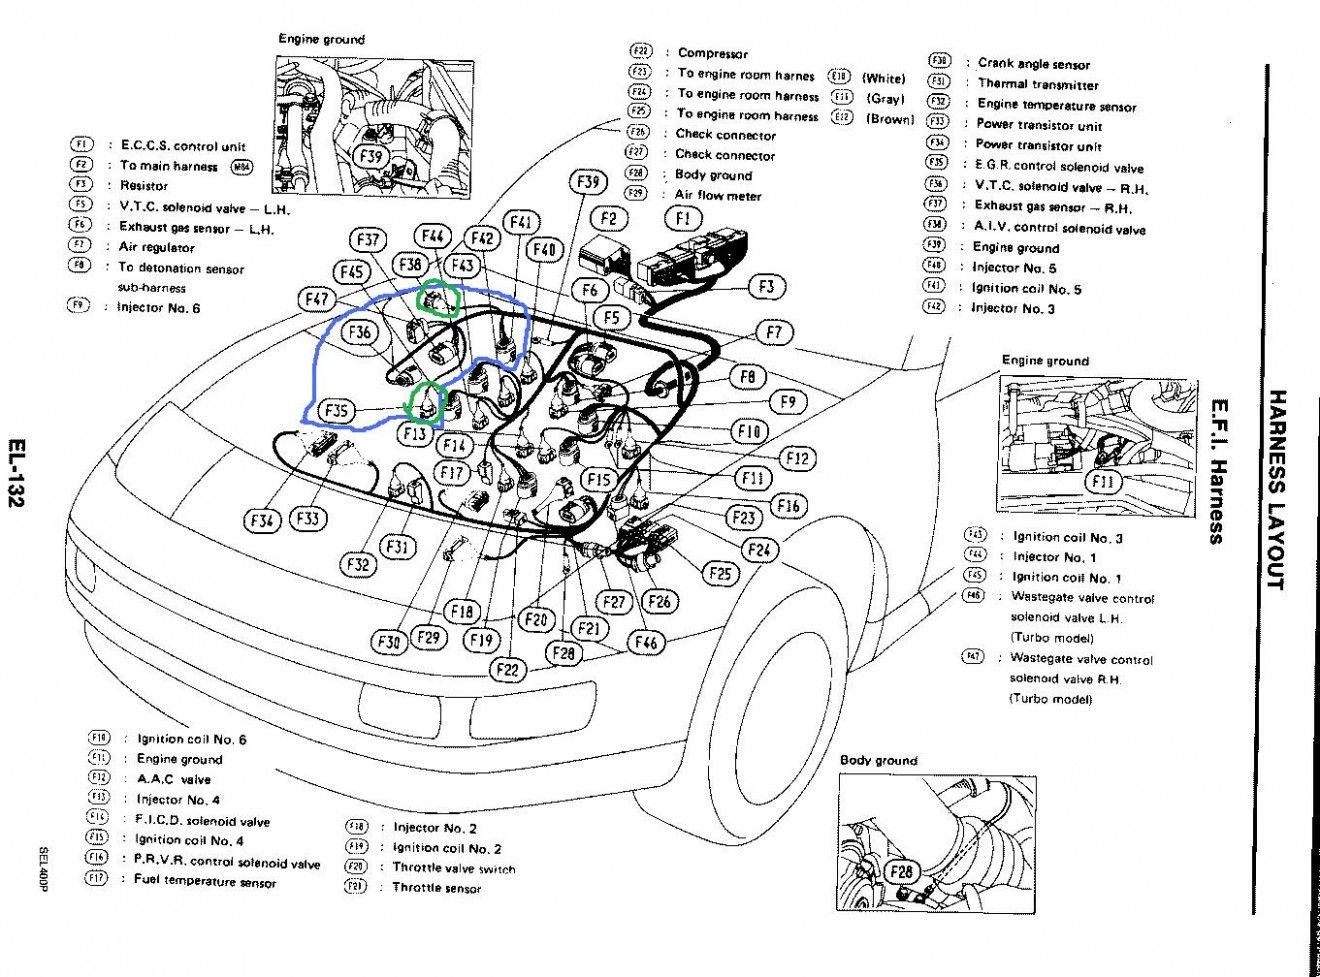 1990 Nissan 300zx Wiring Harness - Schematic wiring diagramcamelotunchained.it